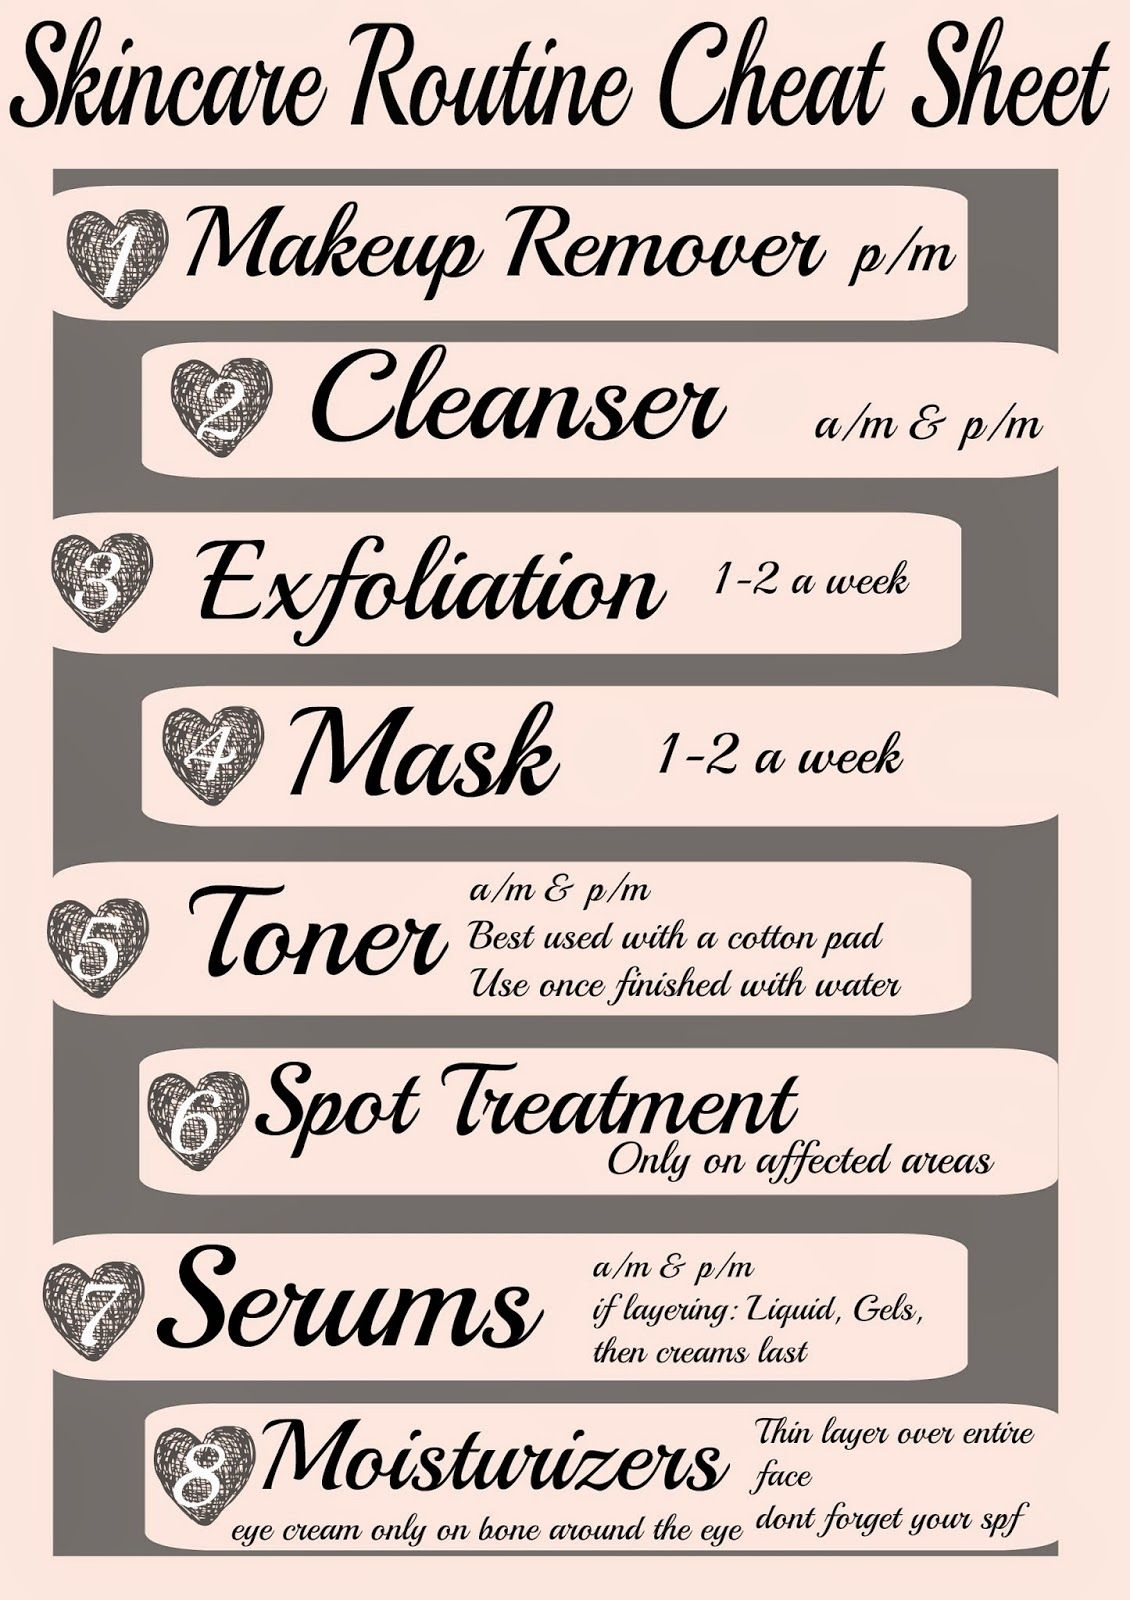 This Should Be Your Basic Skin Care Regimen Daily Weekly To Keep Your Skin Looking Fresh New And Feeling At Its B Skin Care Serum Skin Care Skin Care Routine